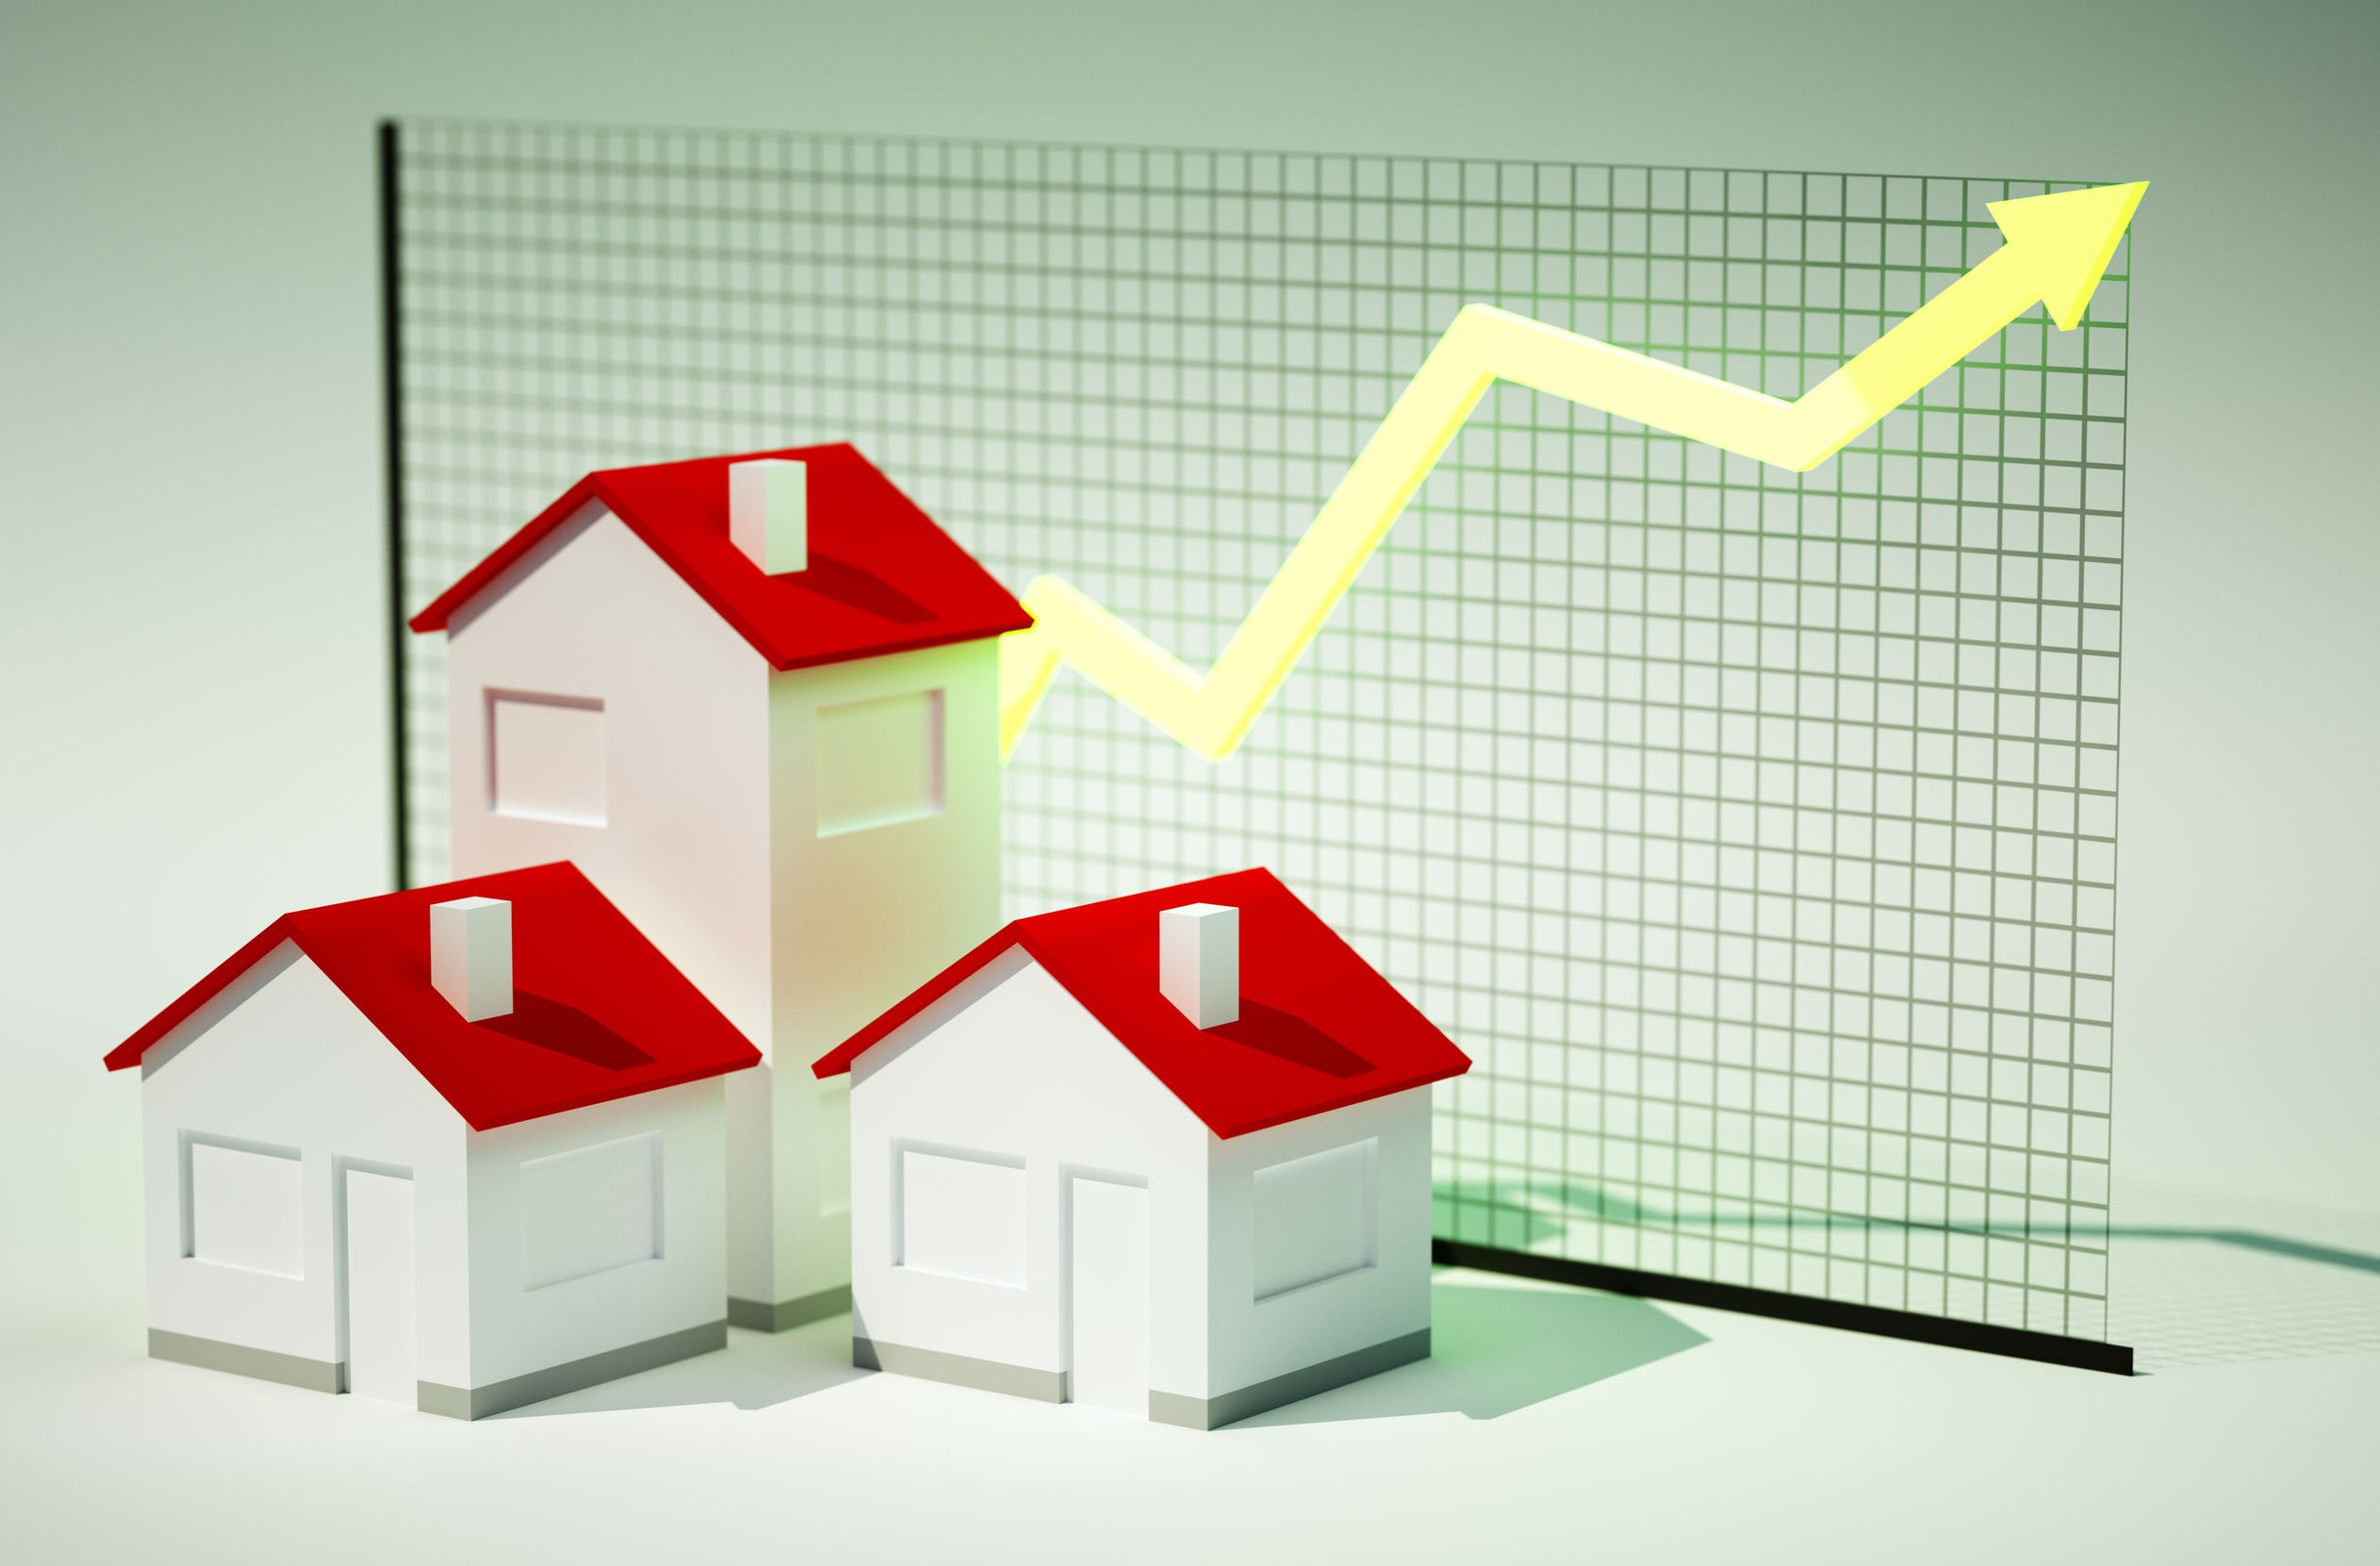 Why Low Housing Inventory Means More Money